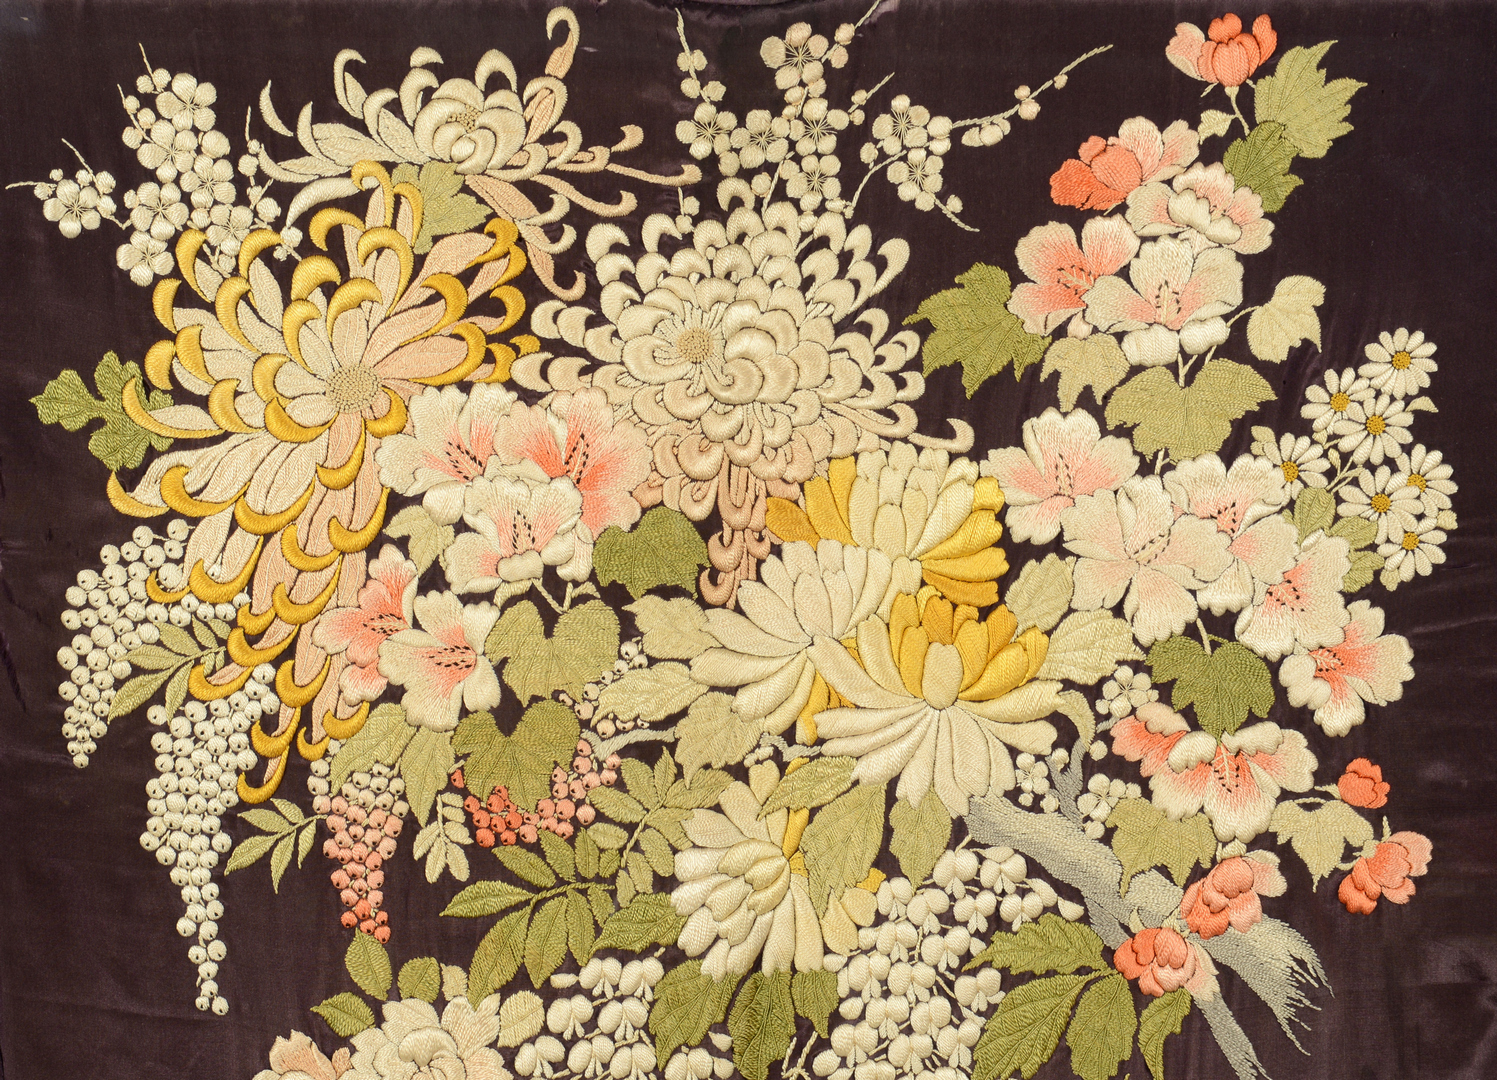 Lot 3088290: Framed Japanese silk embroidered Kimono